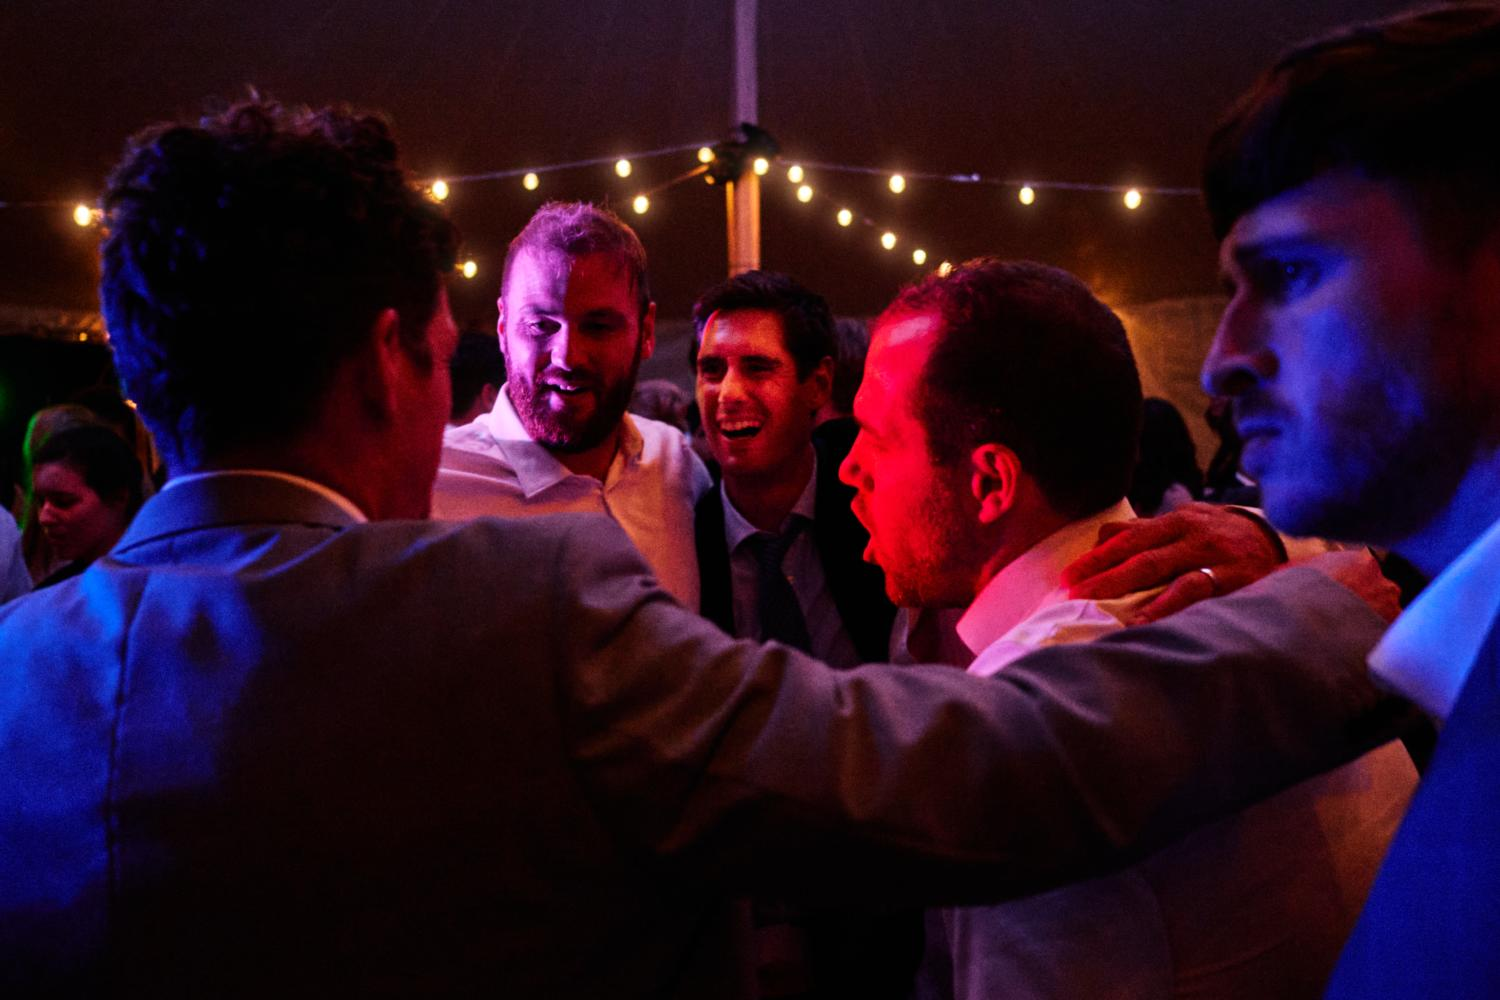 Men dance together in a marquee